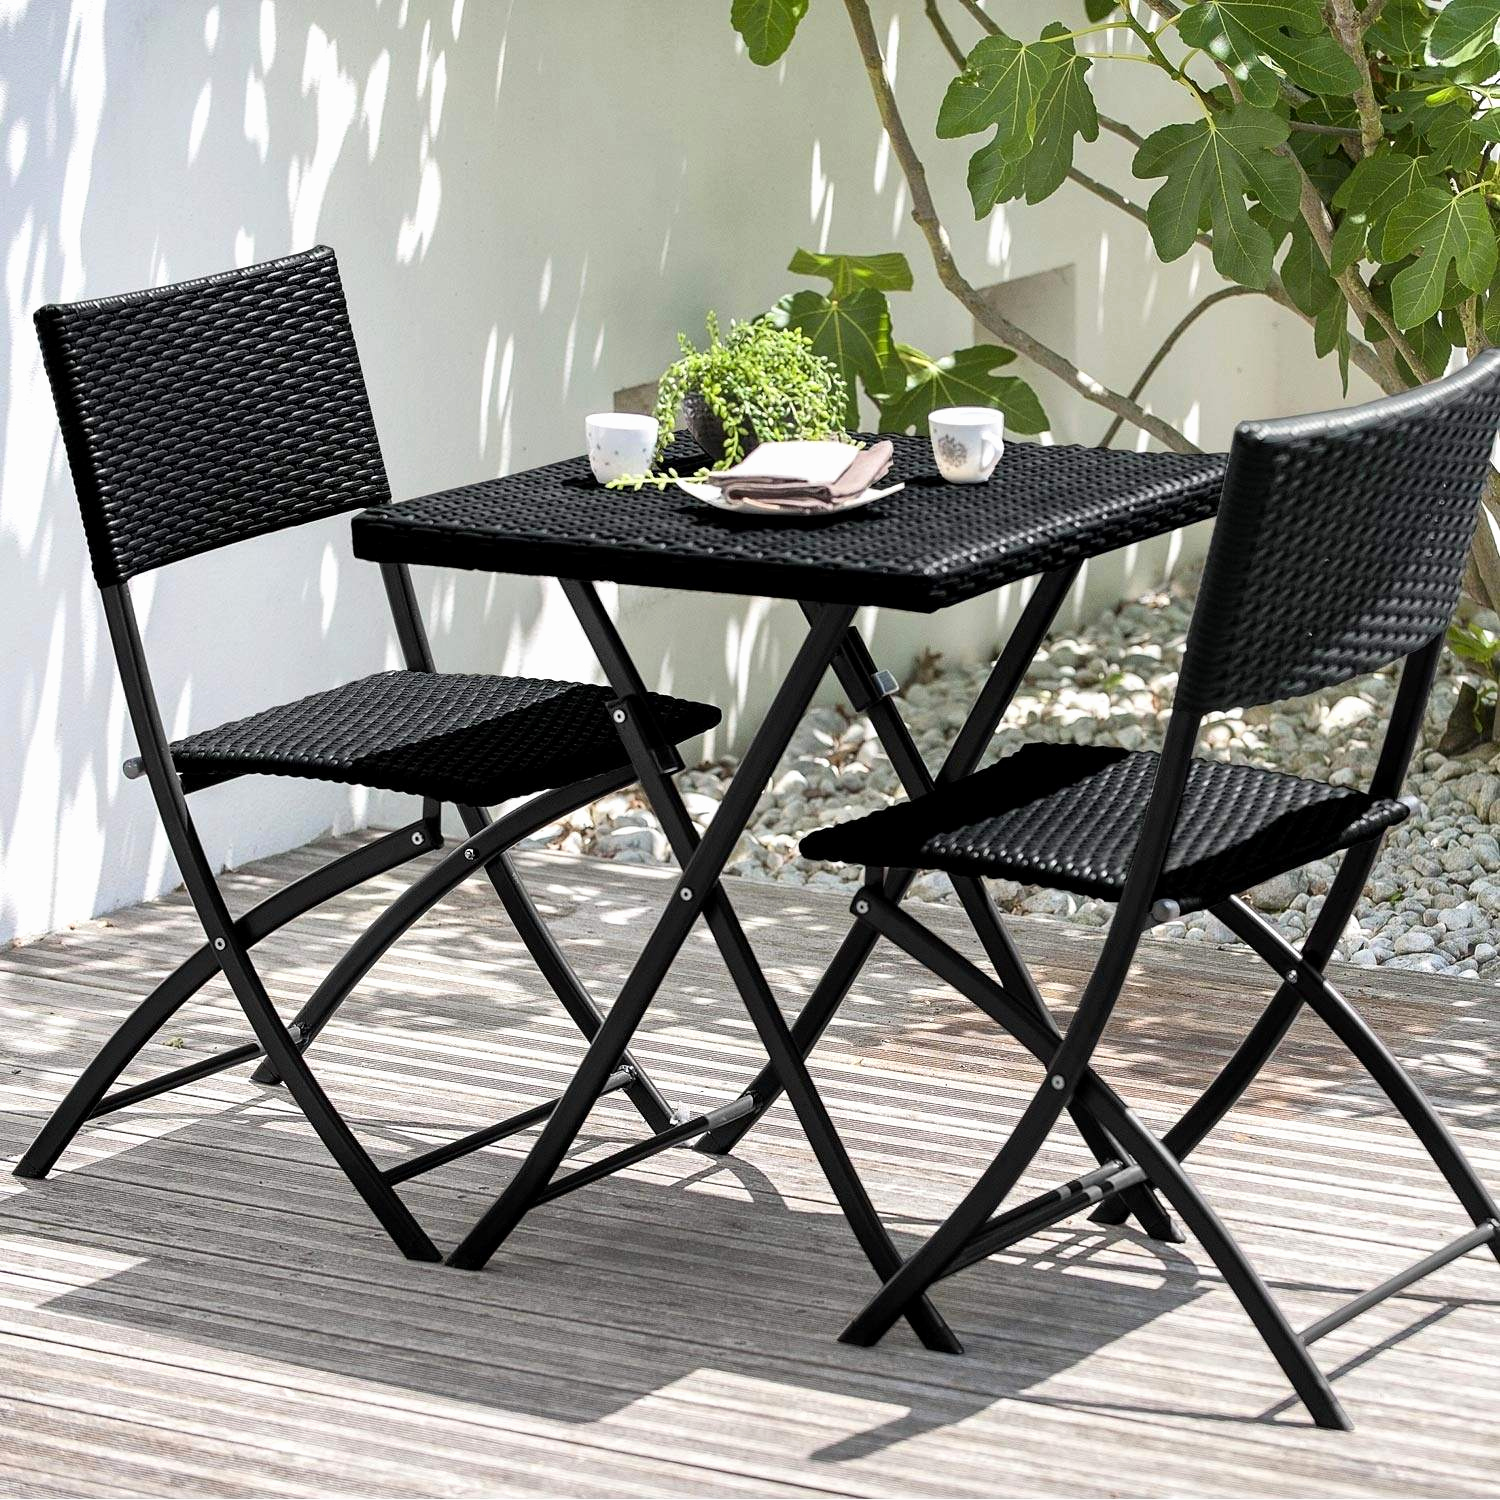 chaise bistrot alu photographie plus chaise jardin aluminium of chaise bistrot alu